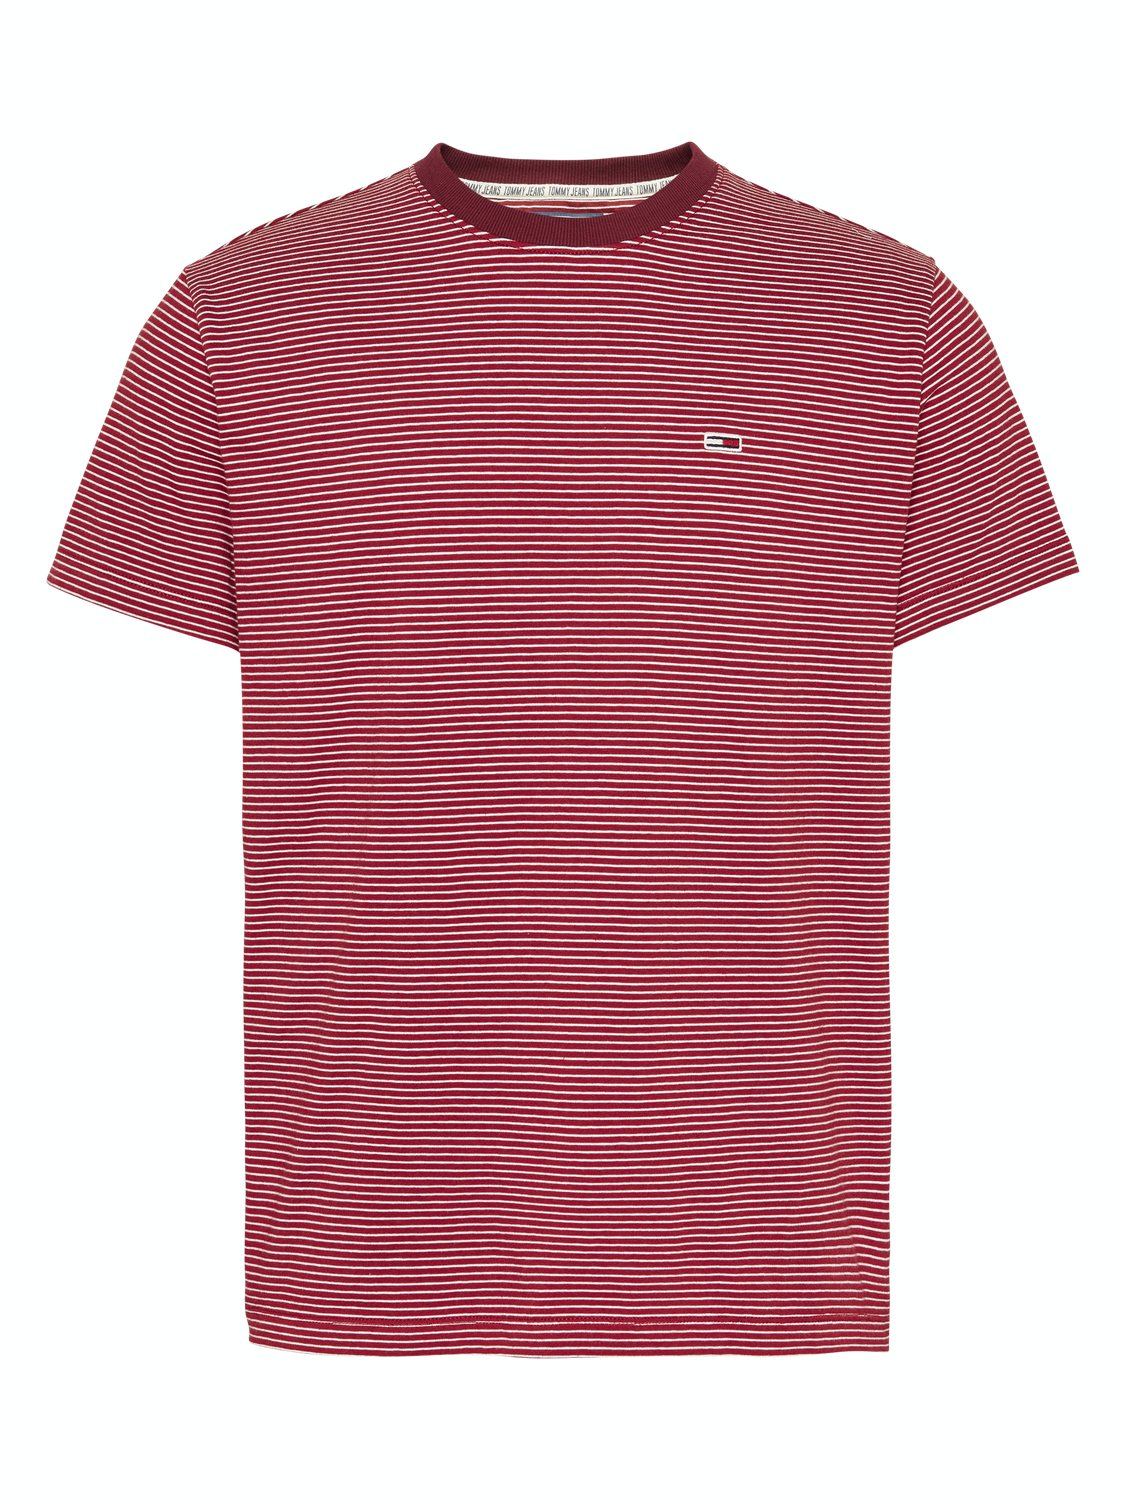 TOMMY HILFIGER - basic stripe T-shirt wine red | Gate36 Hobro